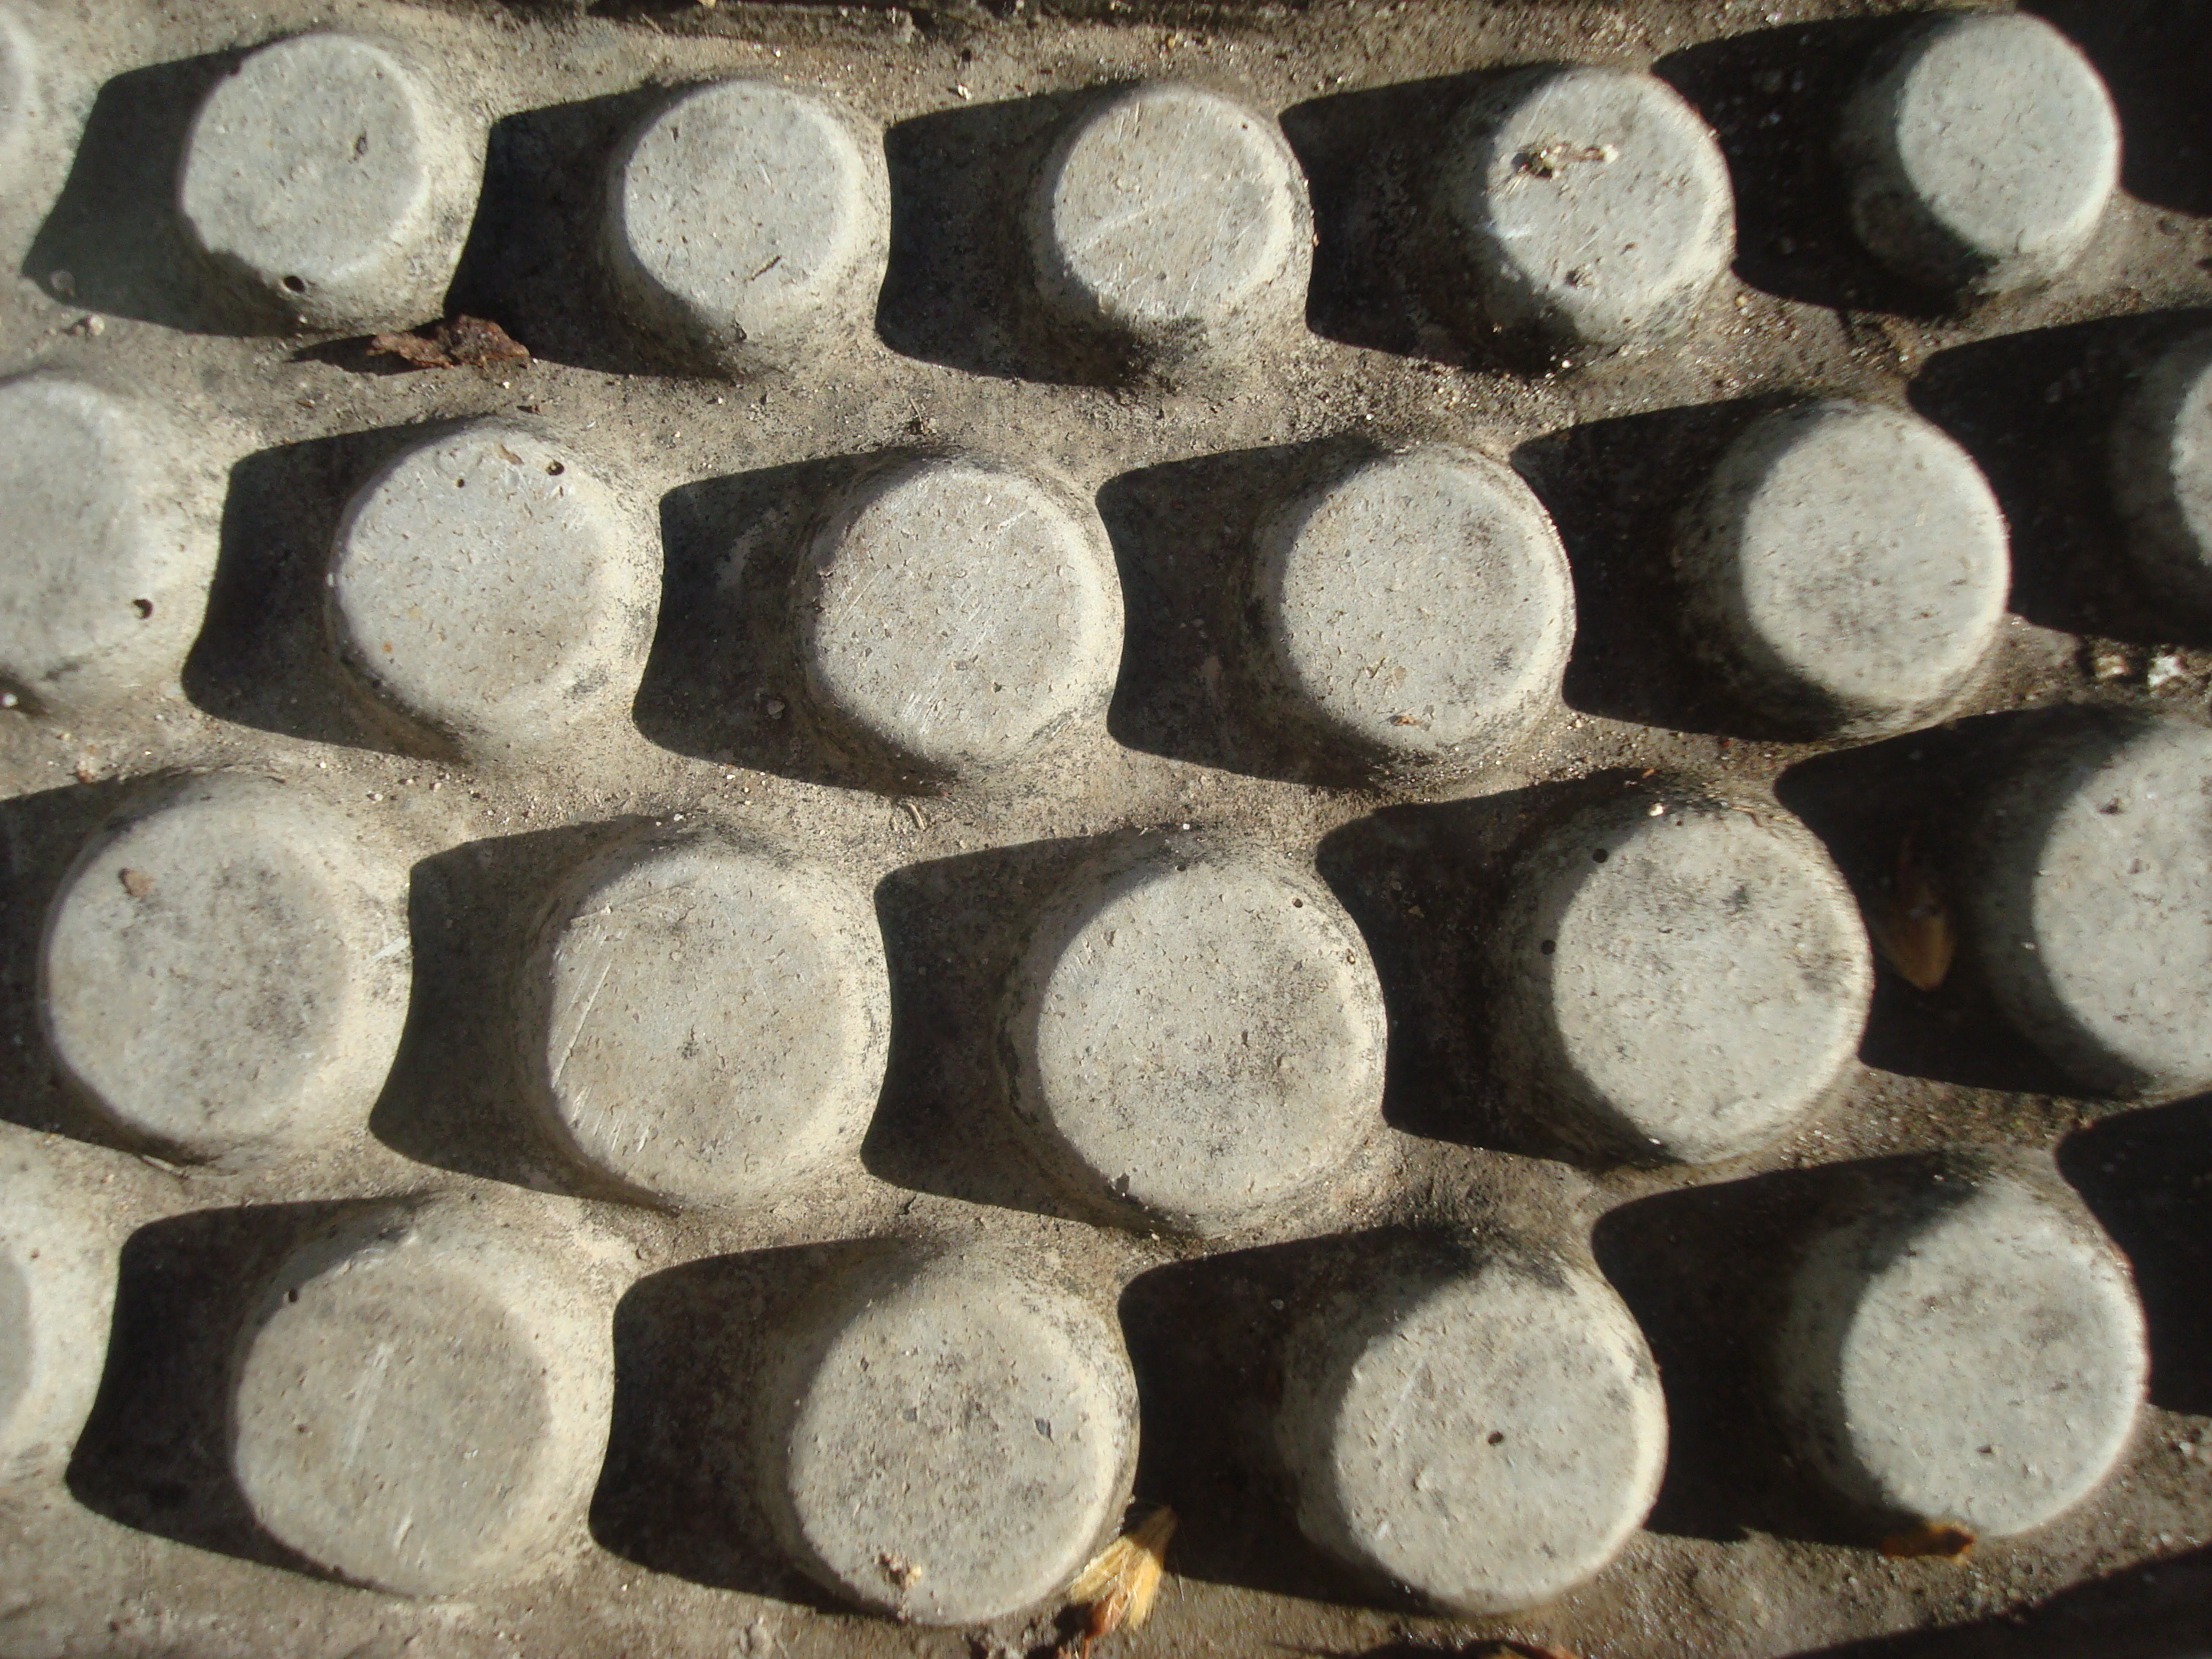 Stone texture, Forms, Grey, Rock, Round, HQ Photo